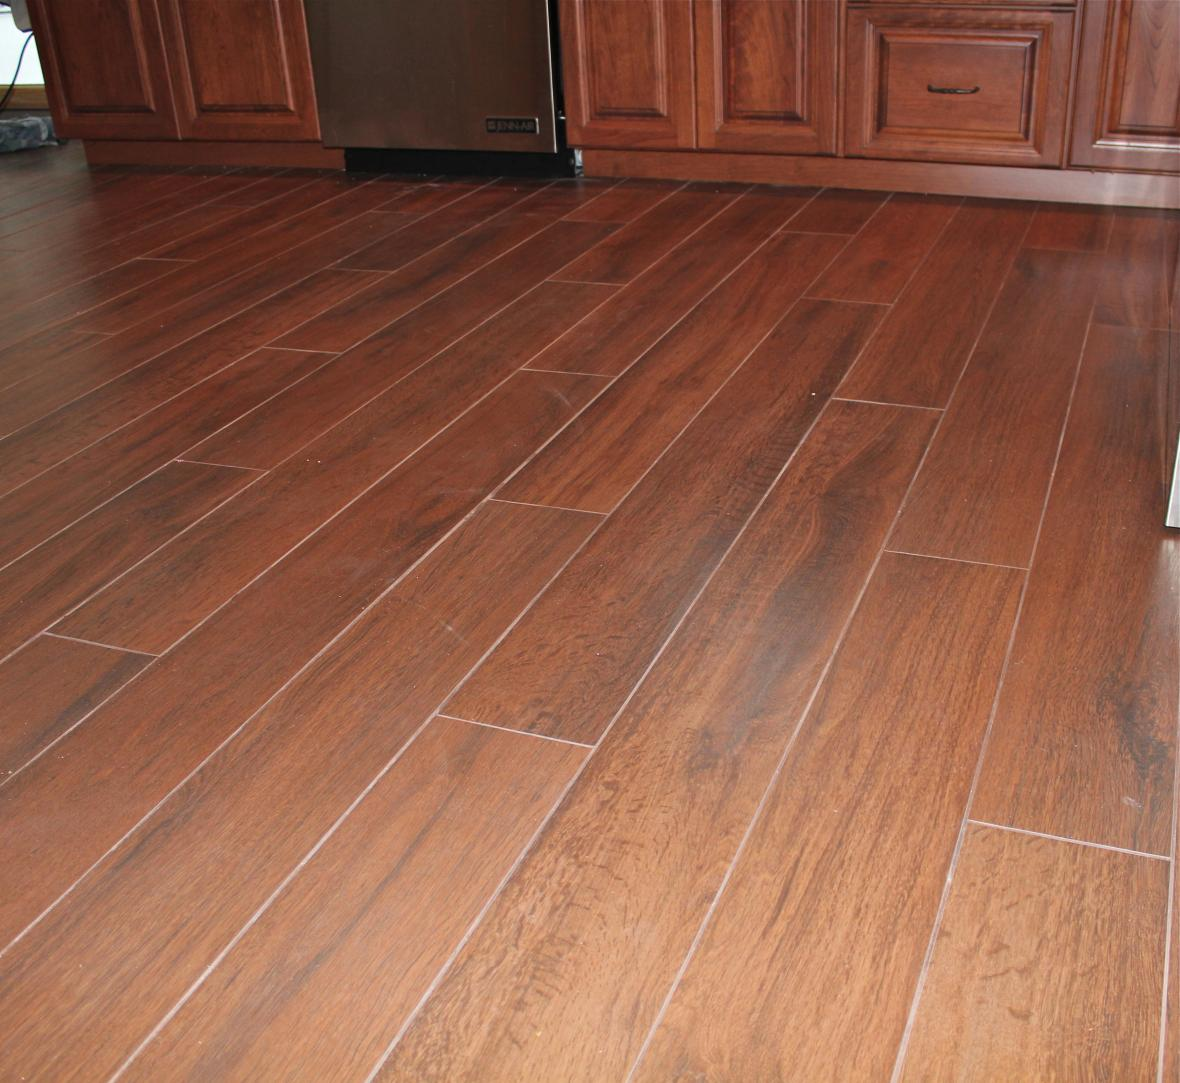 Kitchen Floors | New Jersey Custom Tile